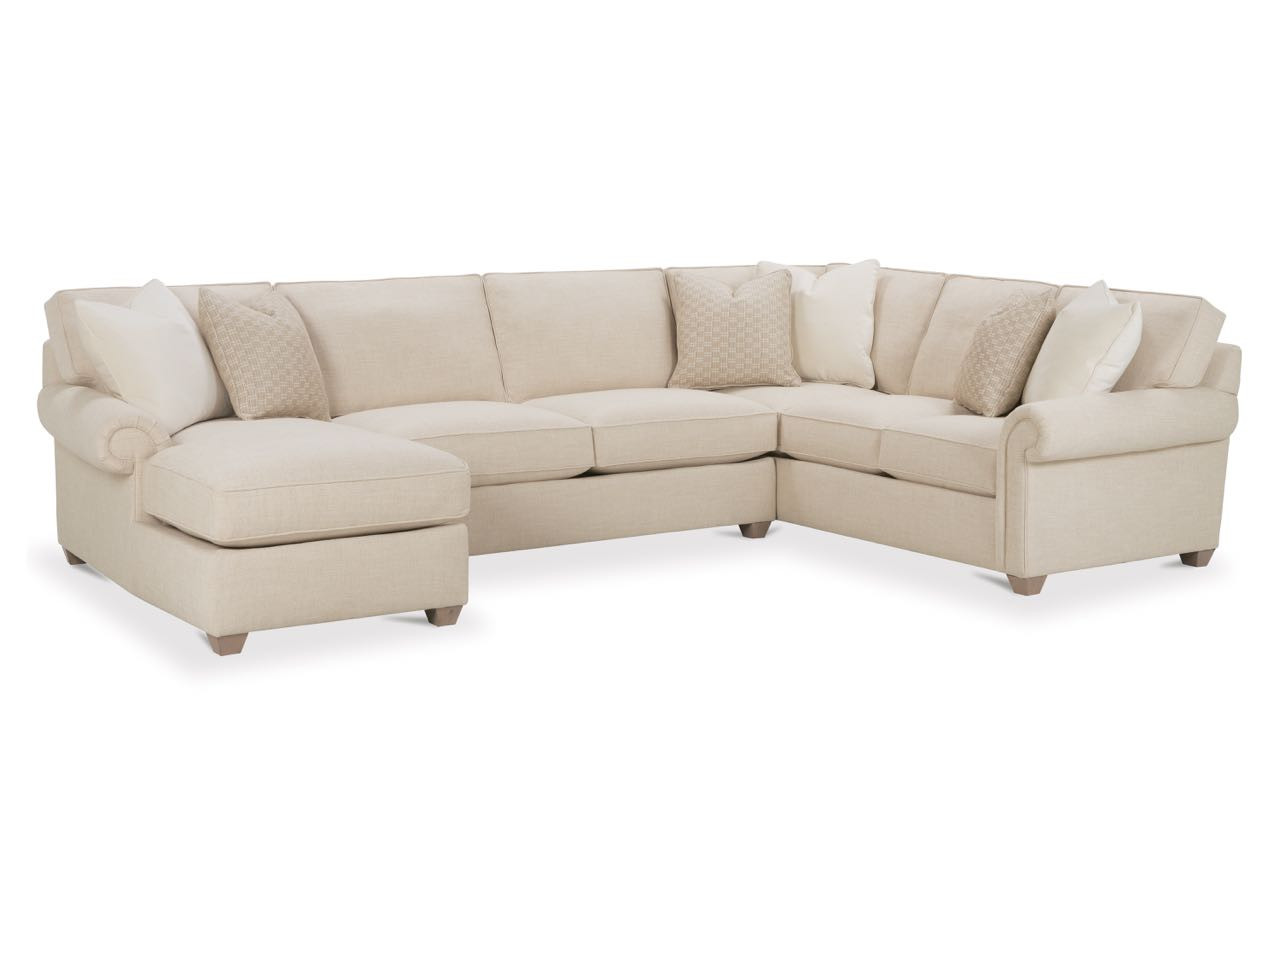 Sofa X Long Mason Sectional Upholstered Sectionals Sofas Sectionals